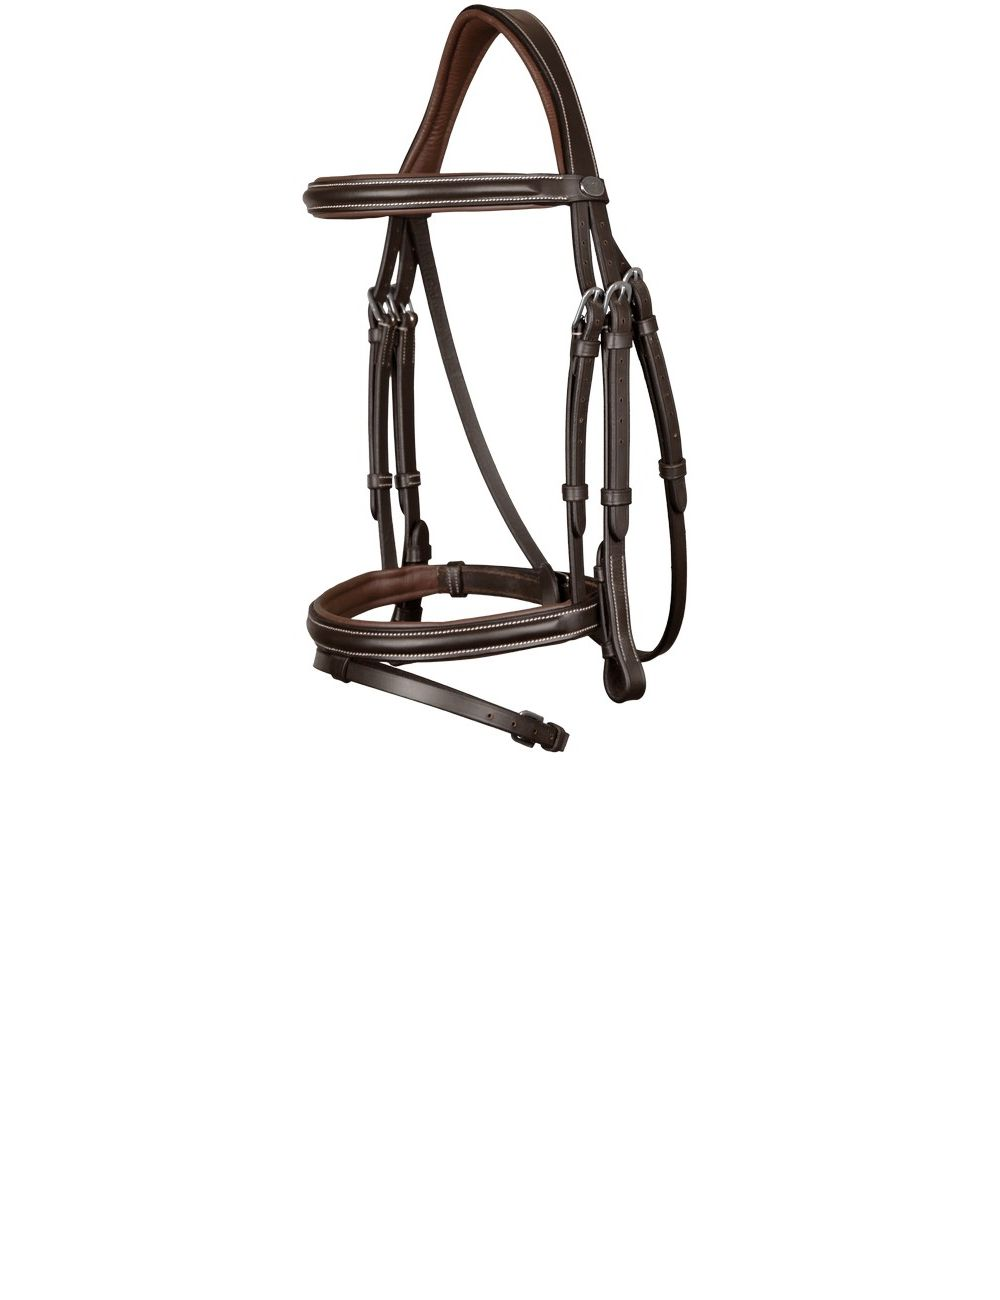 Dyon Working Collection flash noseband bridle - 1